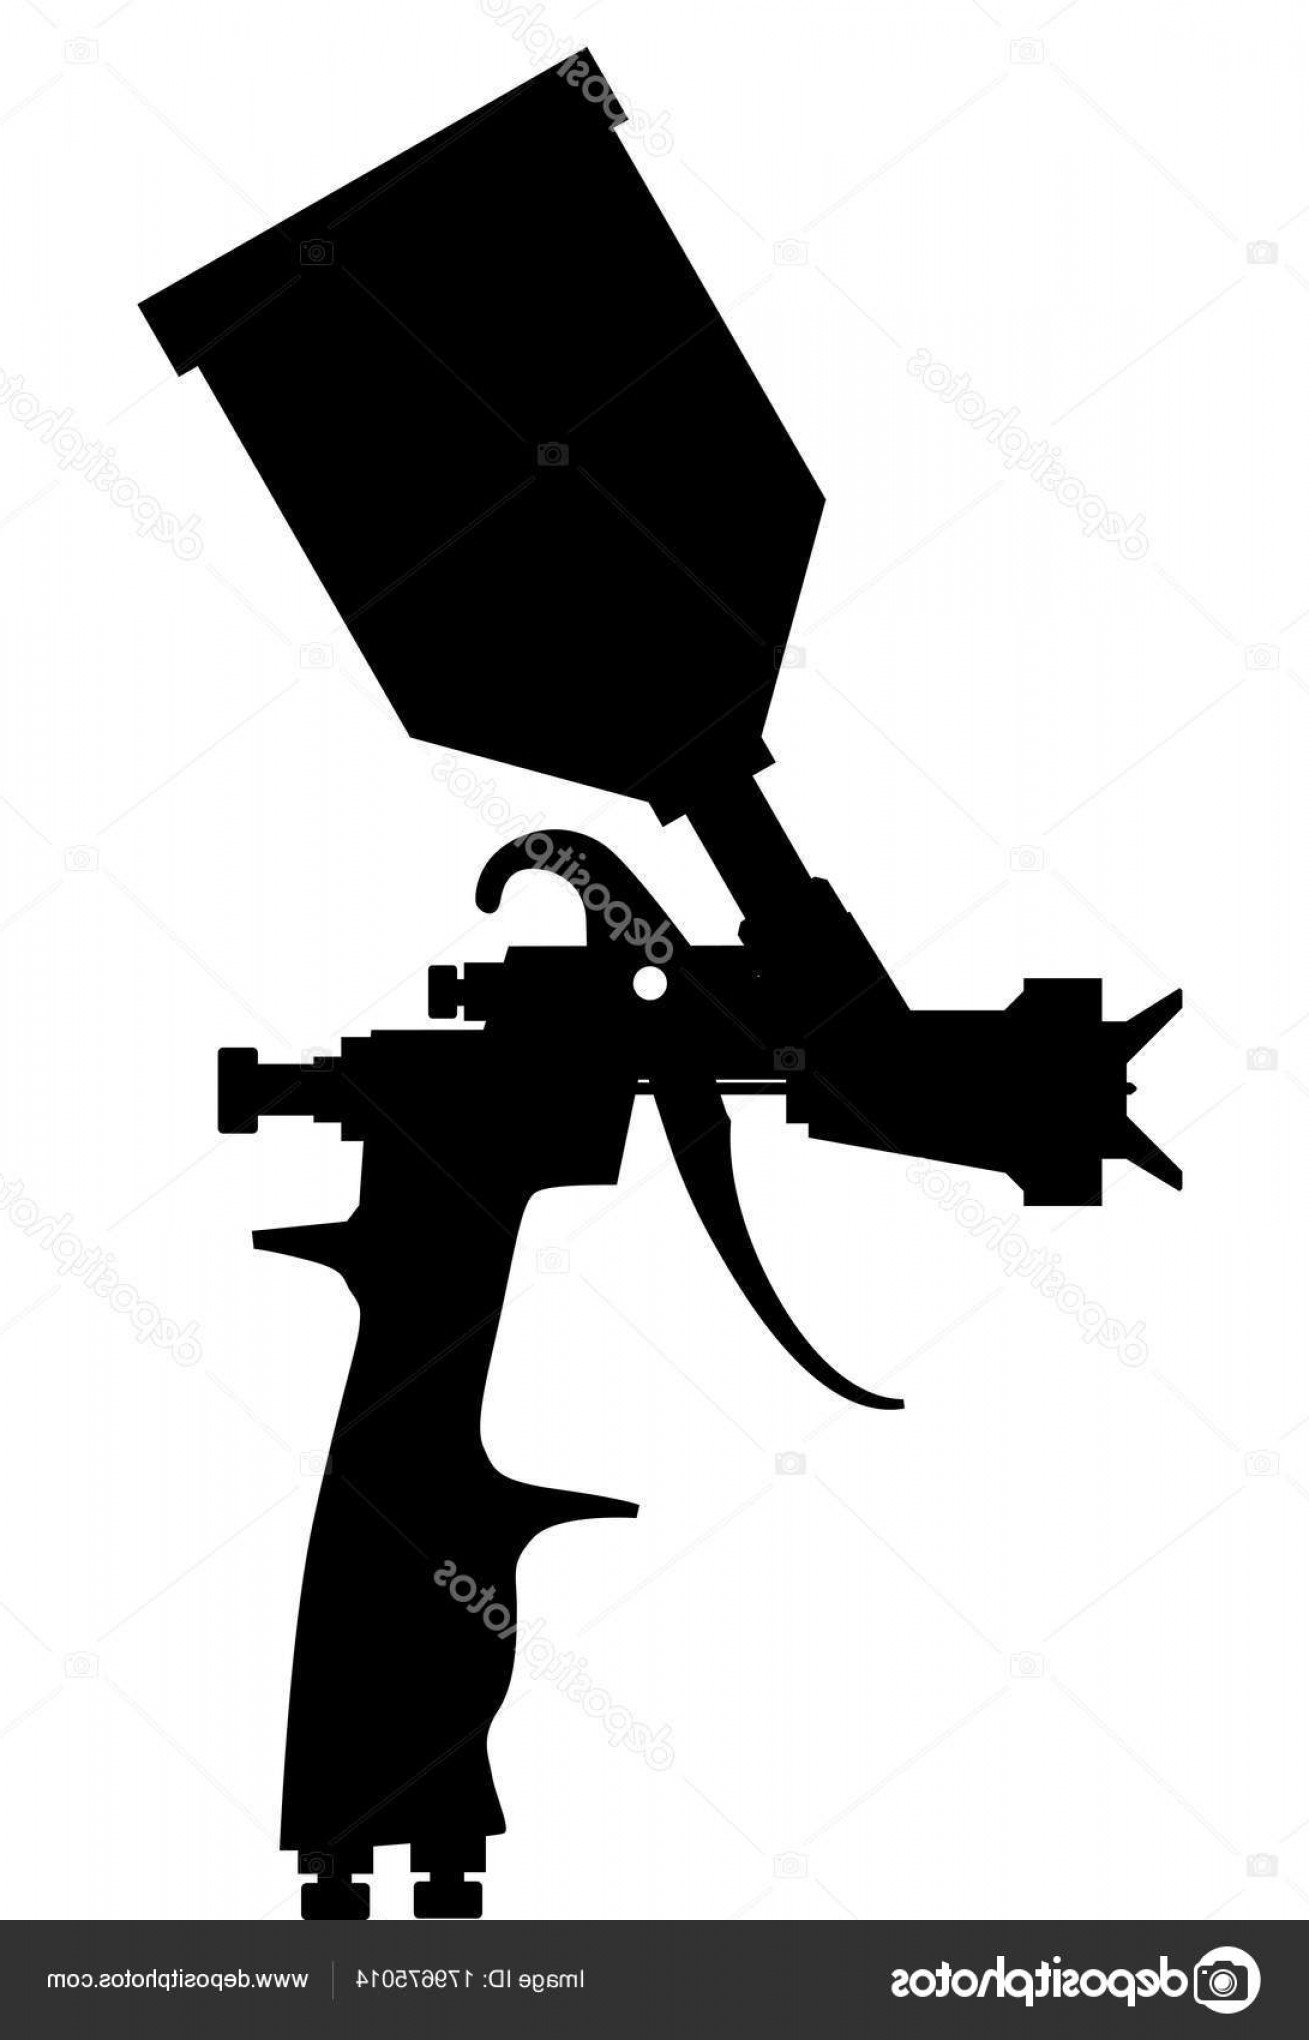 Paint Gun Vector at GetDrawings com | Free for personal use